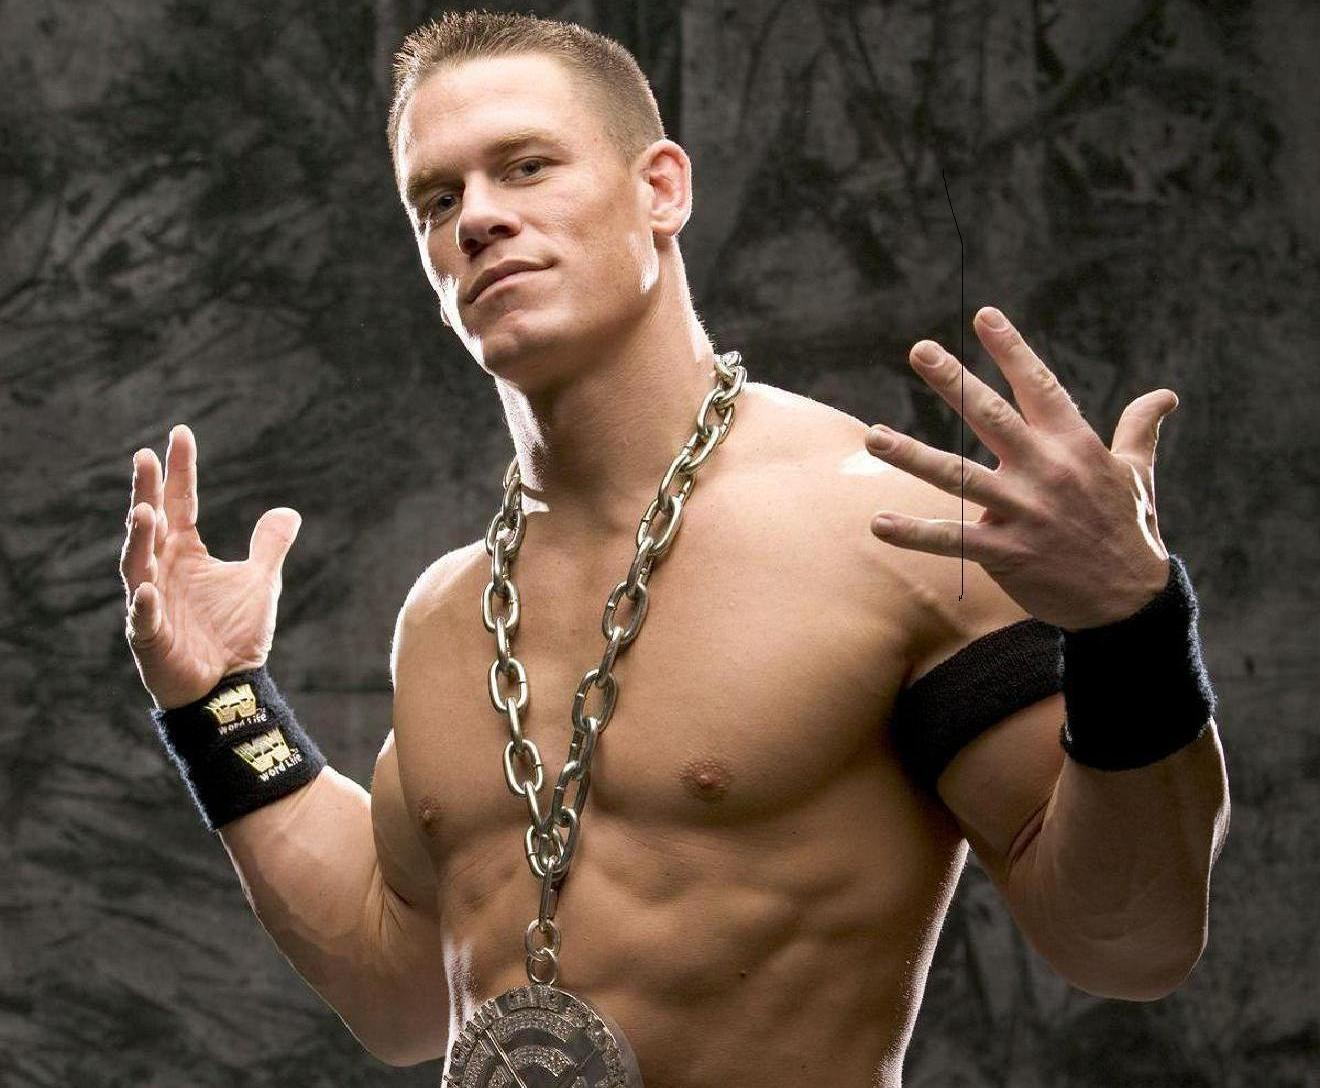 John Cena hottest Wallpaper 4. Posted by shumail at 7:00 PM